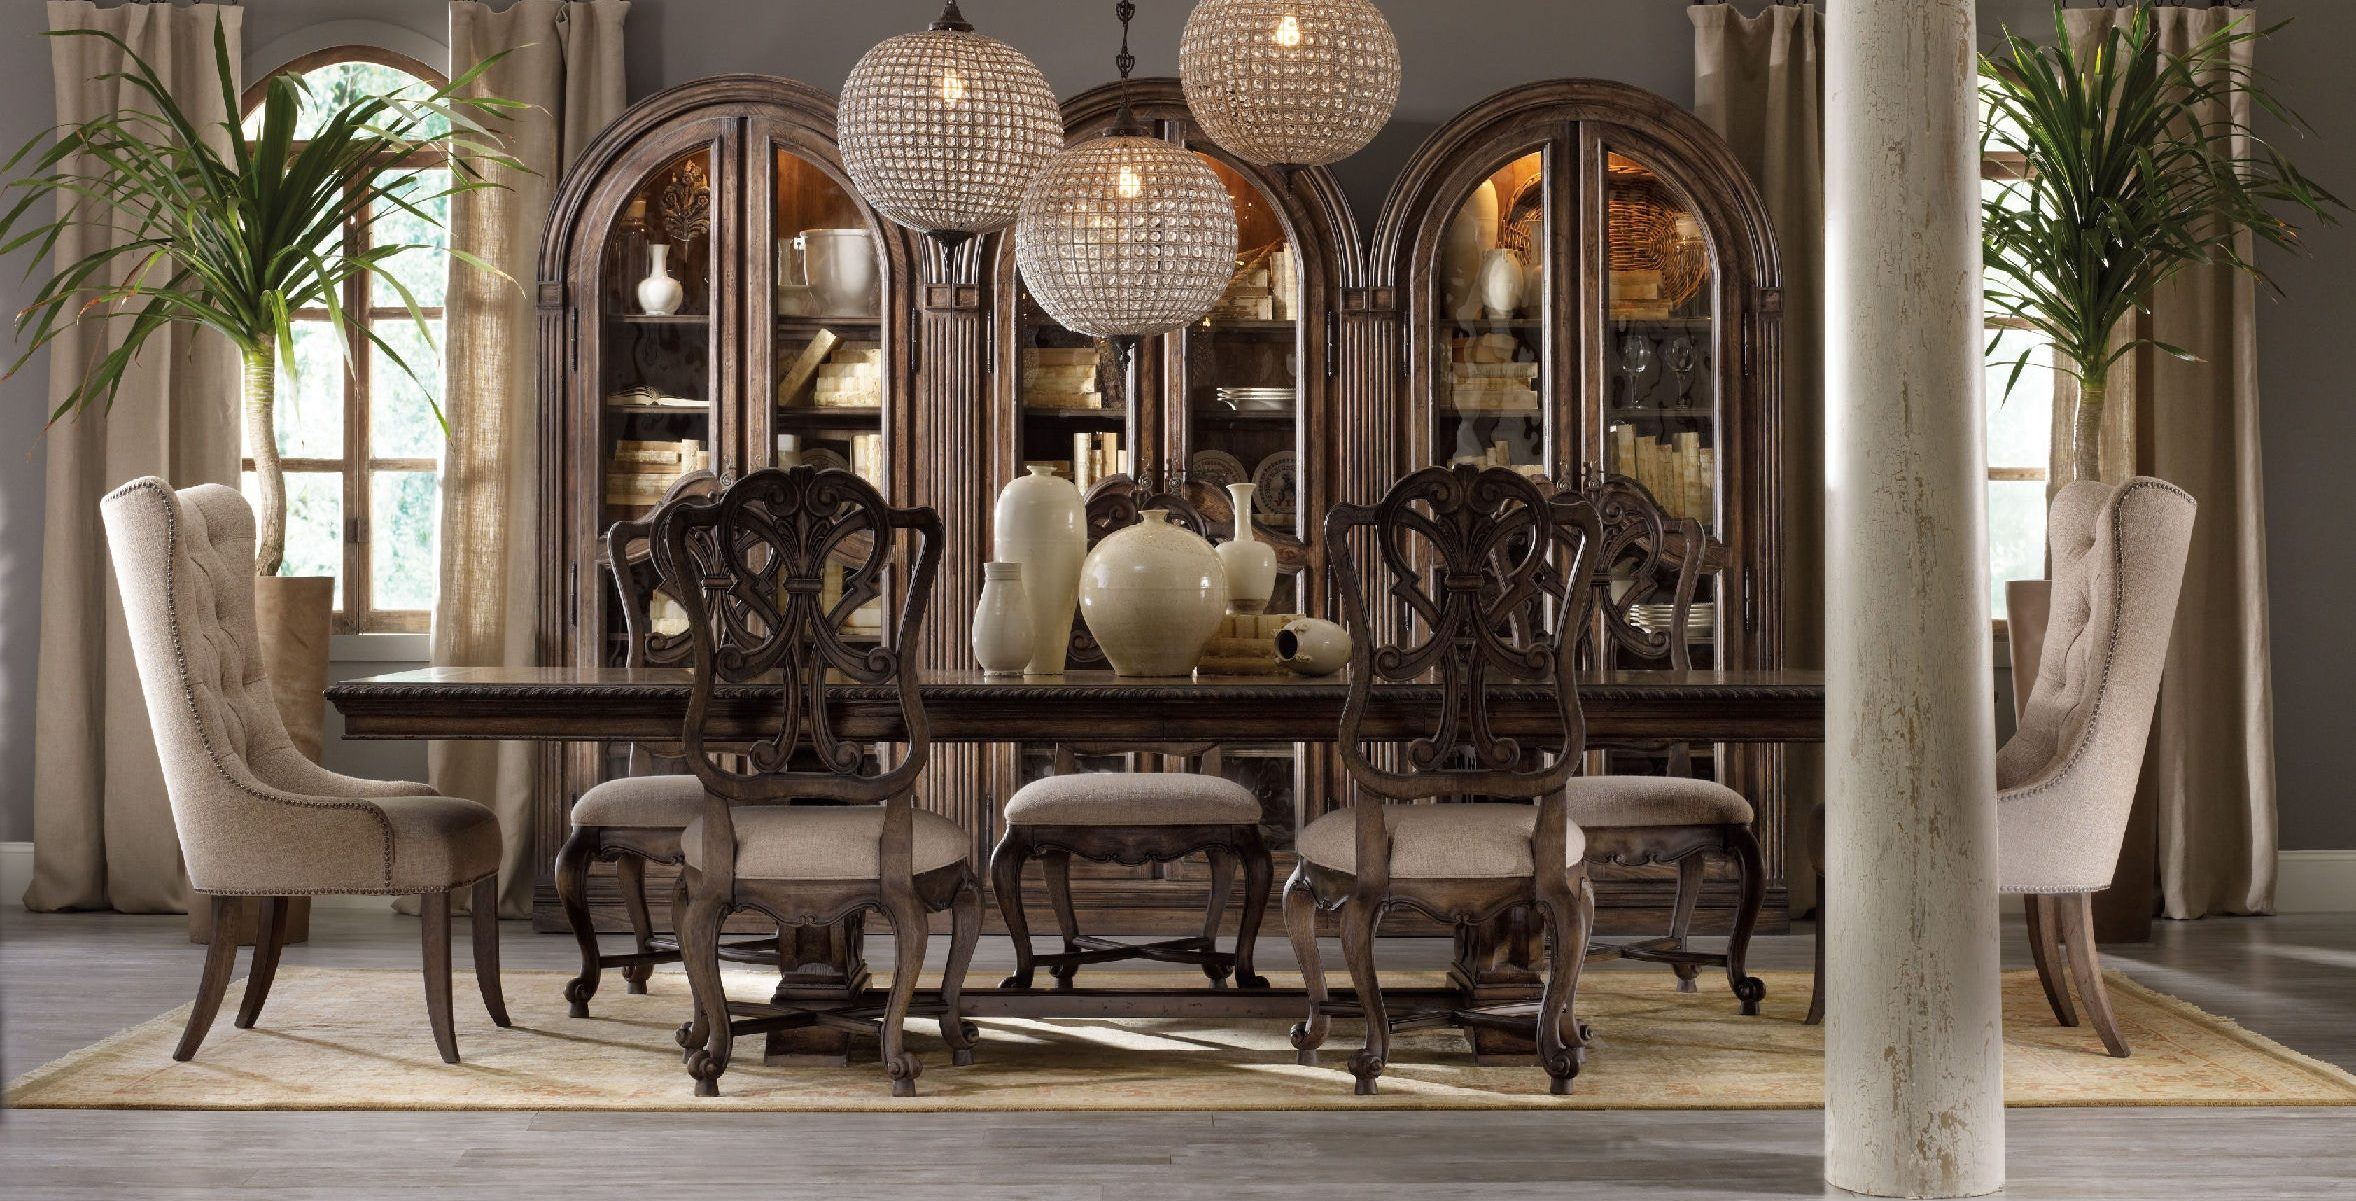 guide to dining room design